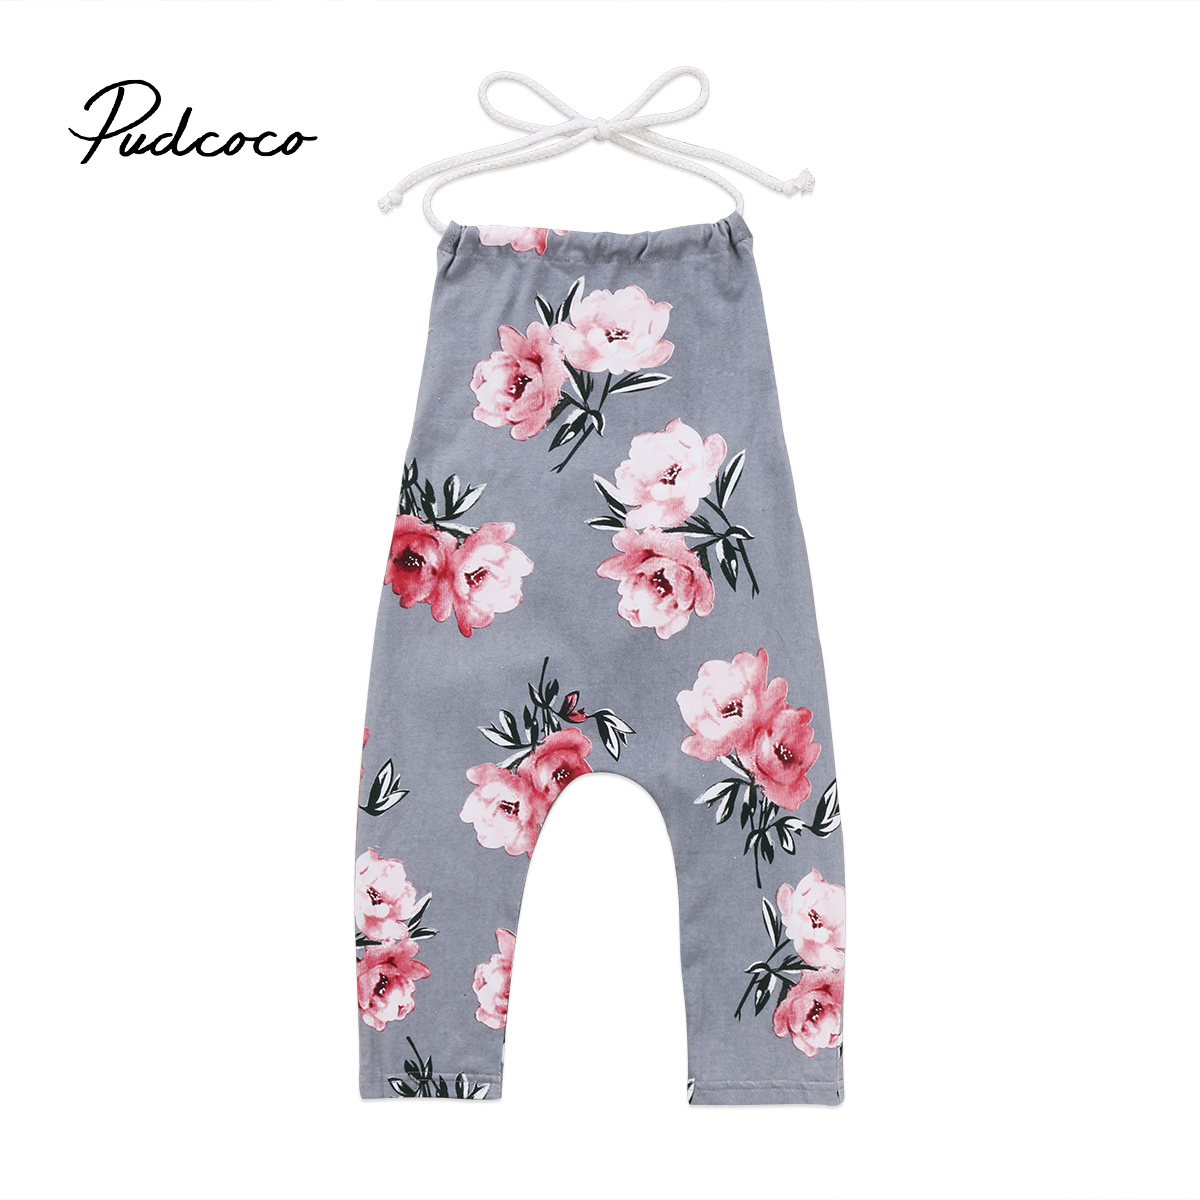 2018 Brand New Sleeveless Toddler Infant Child Kids Baby Kids Girl Flower Halter Romper Jumpsuit Playsuit Strap Clothes 6M-6T